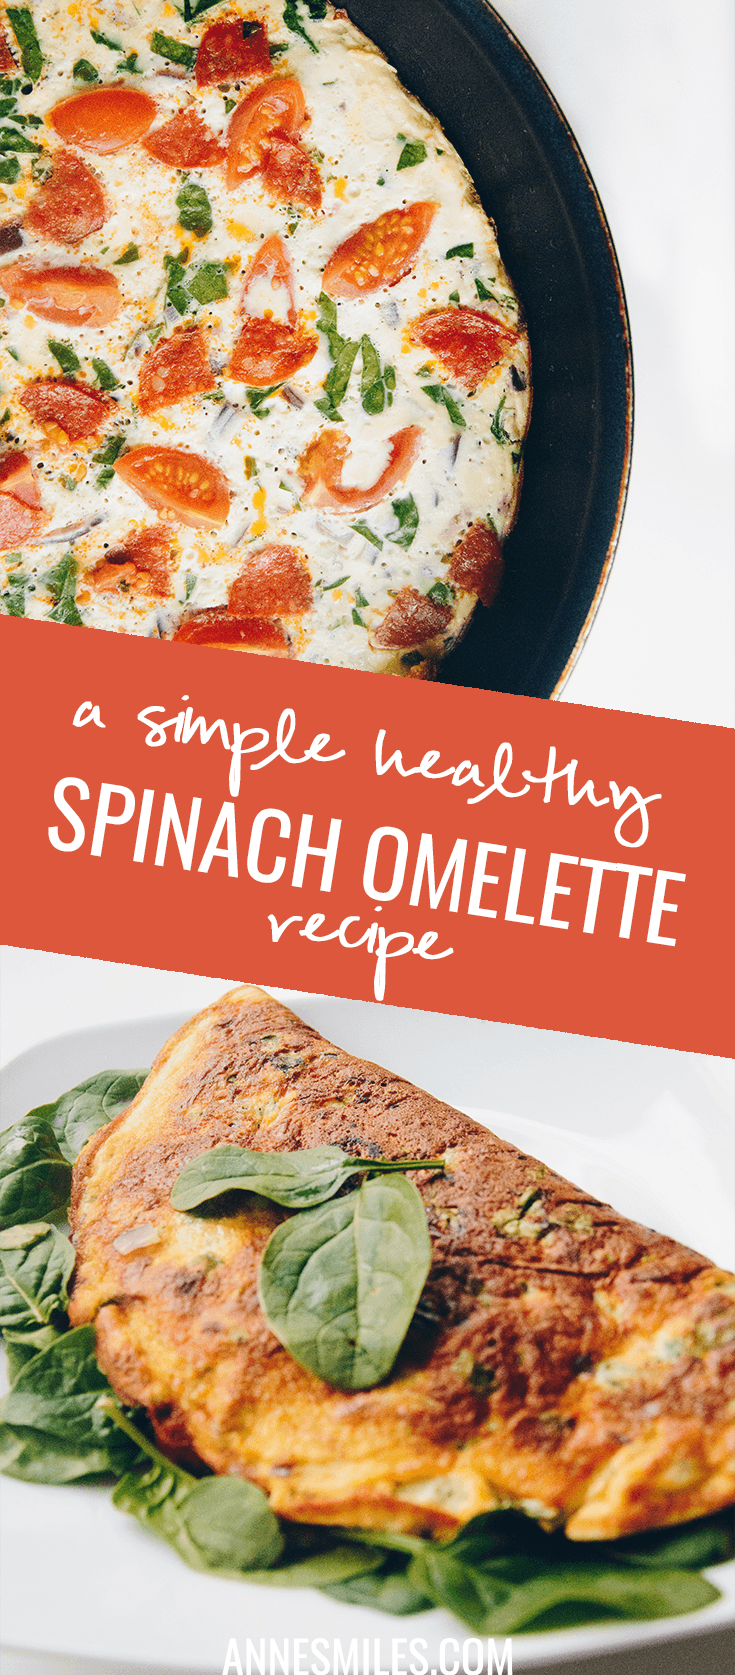 Recipe for a health, yummy spinach omelette